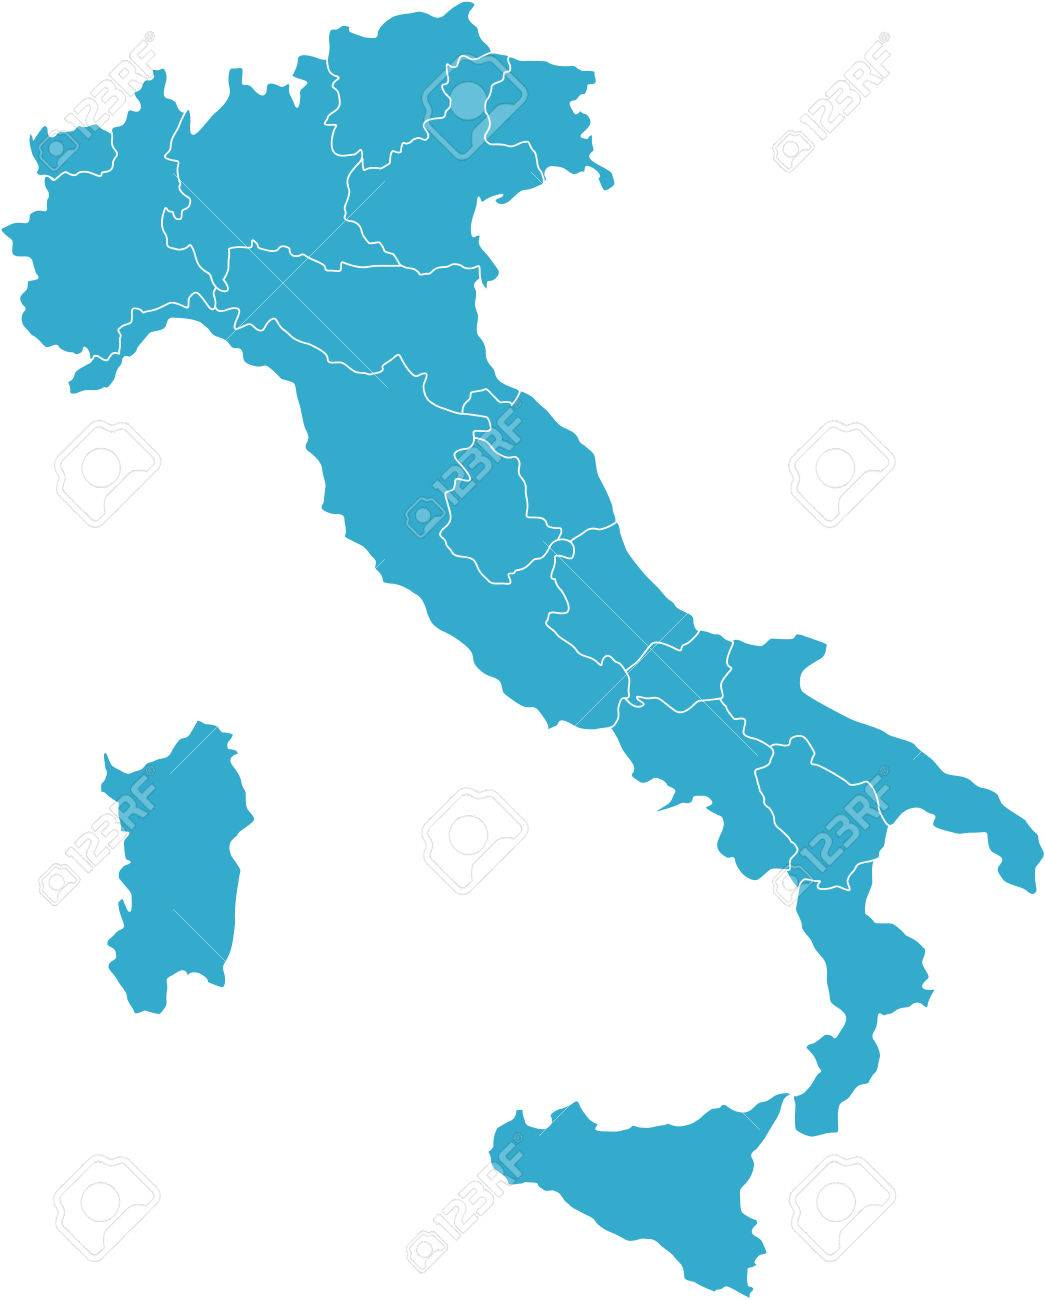 There is a map of Italy country Stock Vector - 4292604